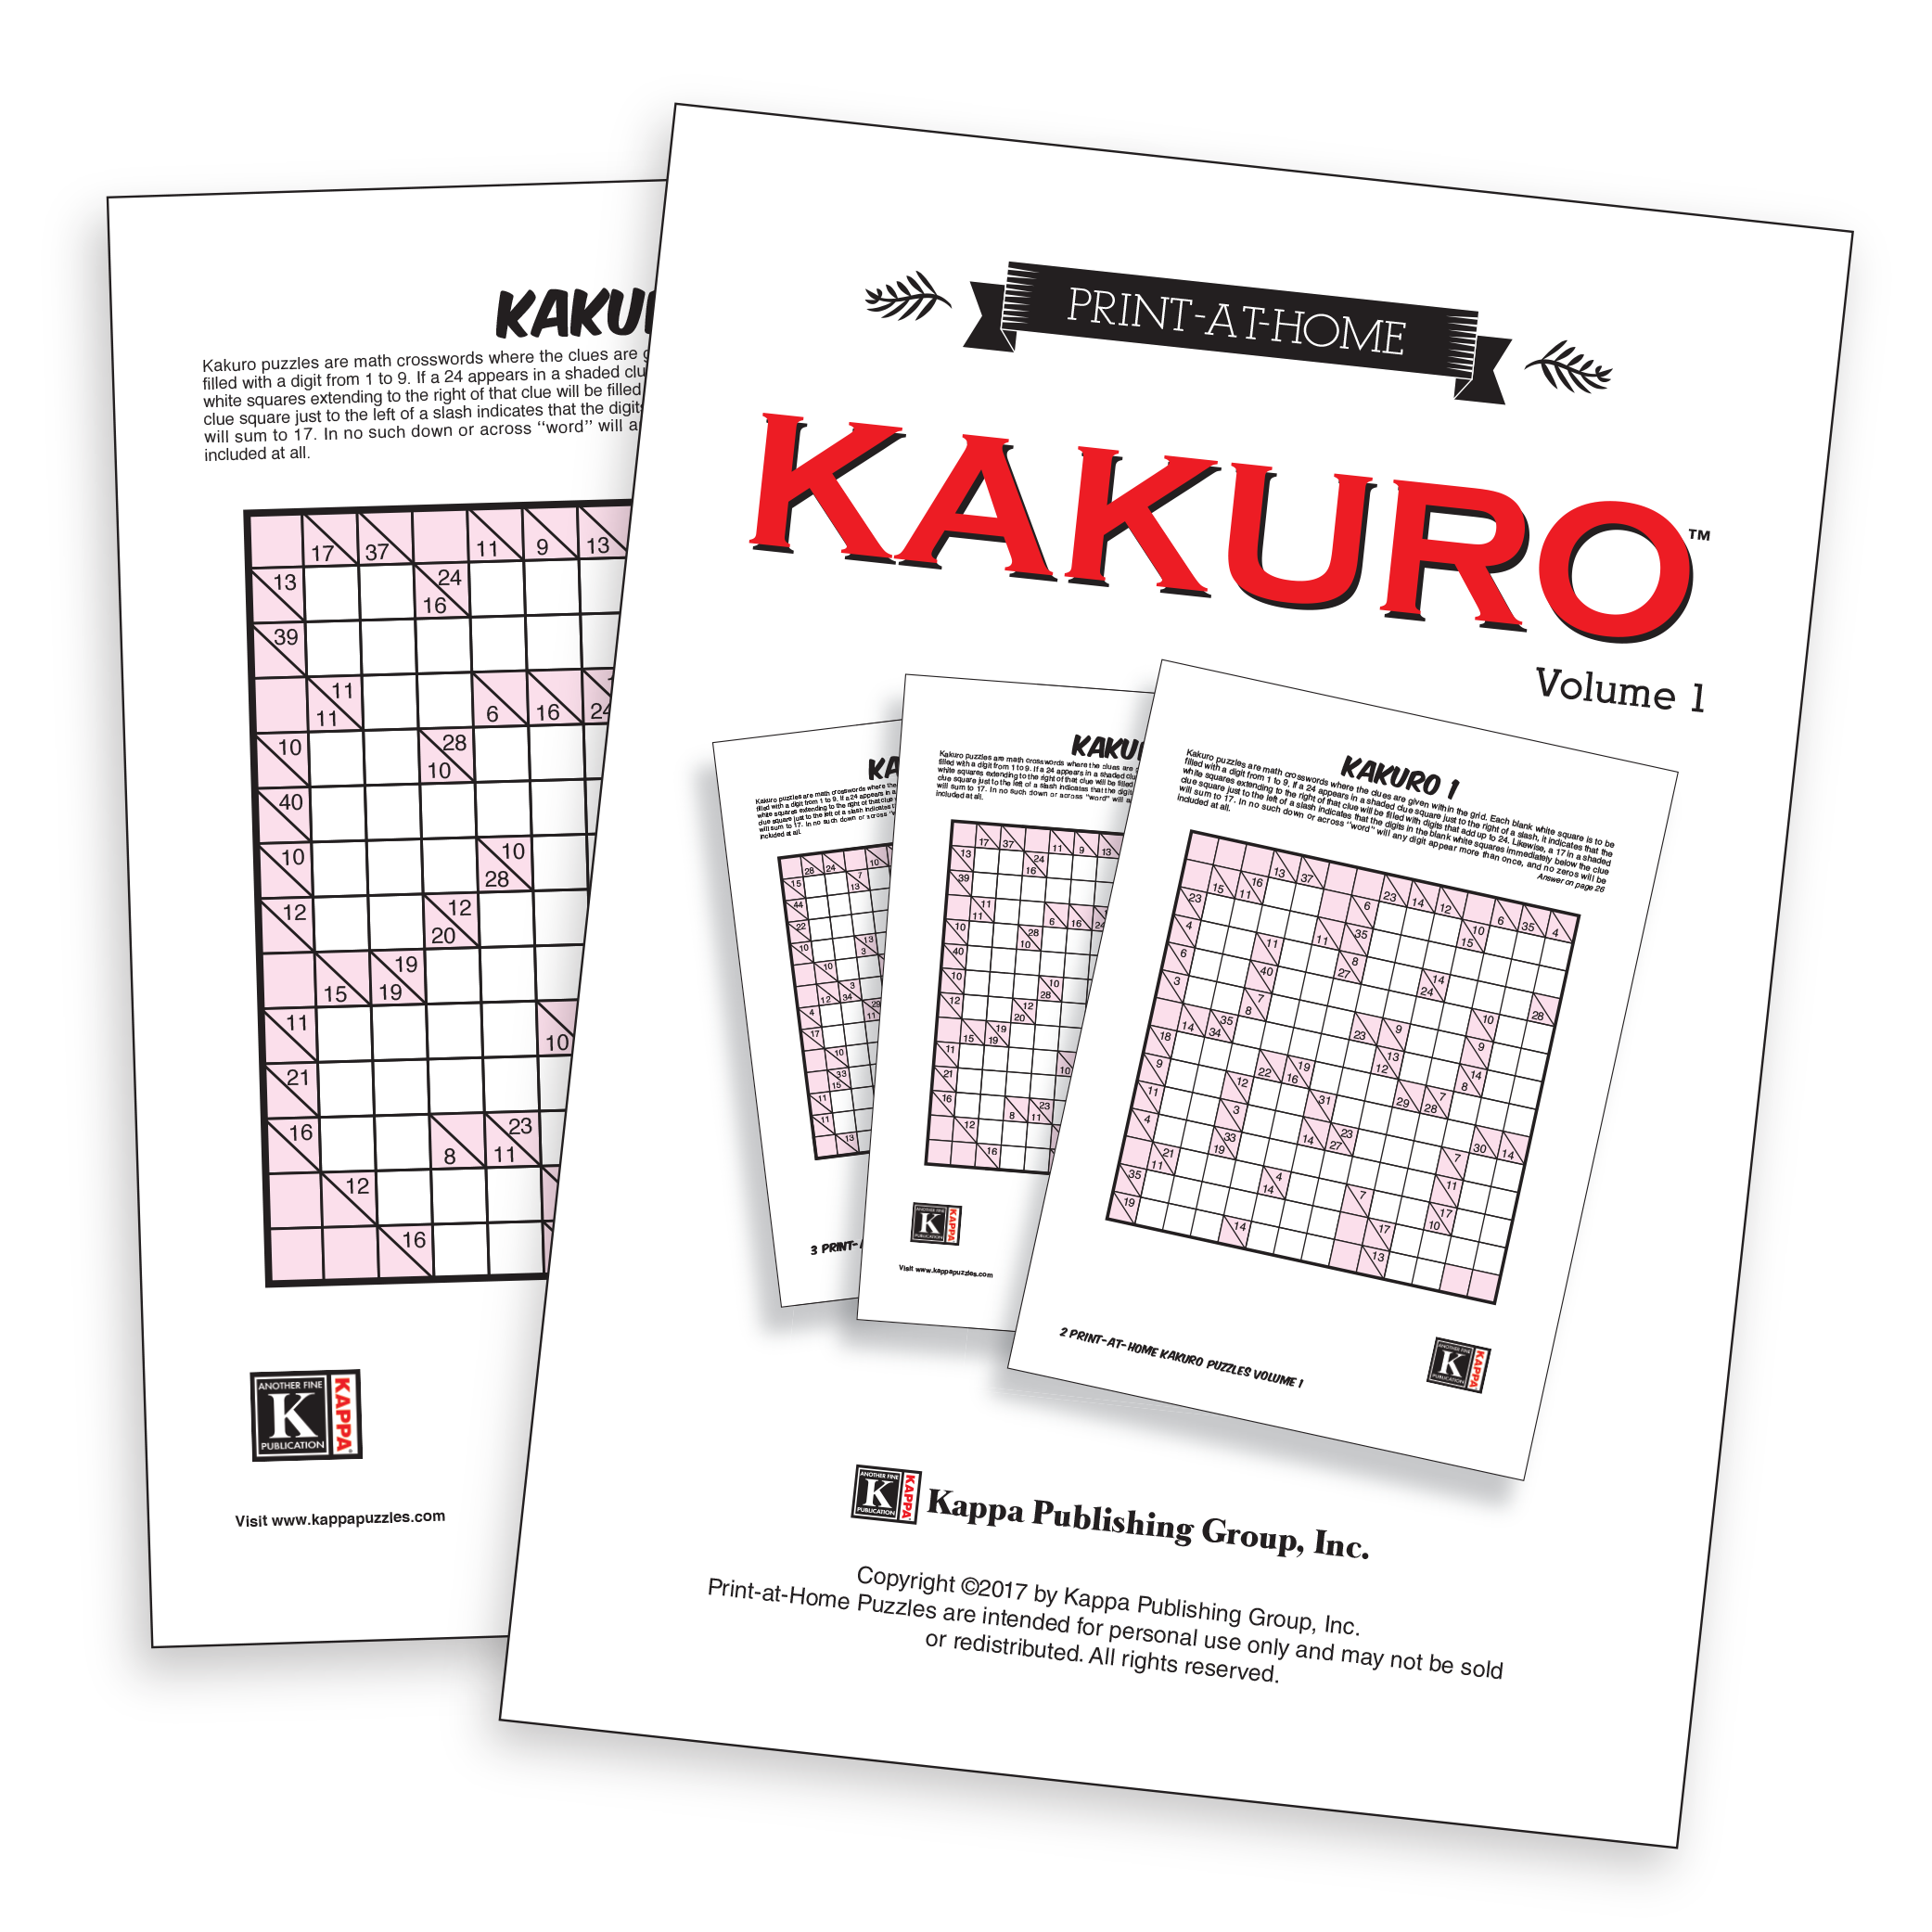 Print At Home Puzzles Kappa Logic Diagram Crossword Clue Kakuro